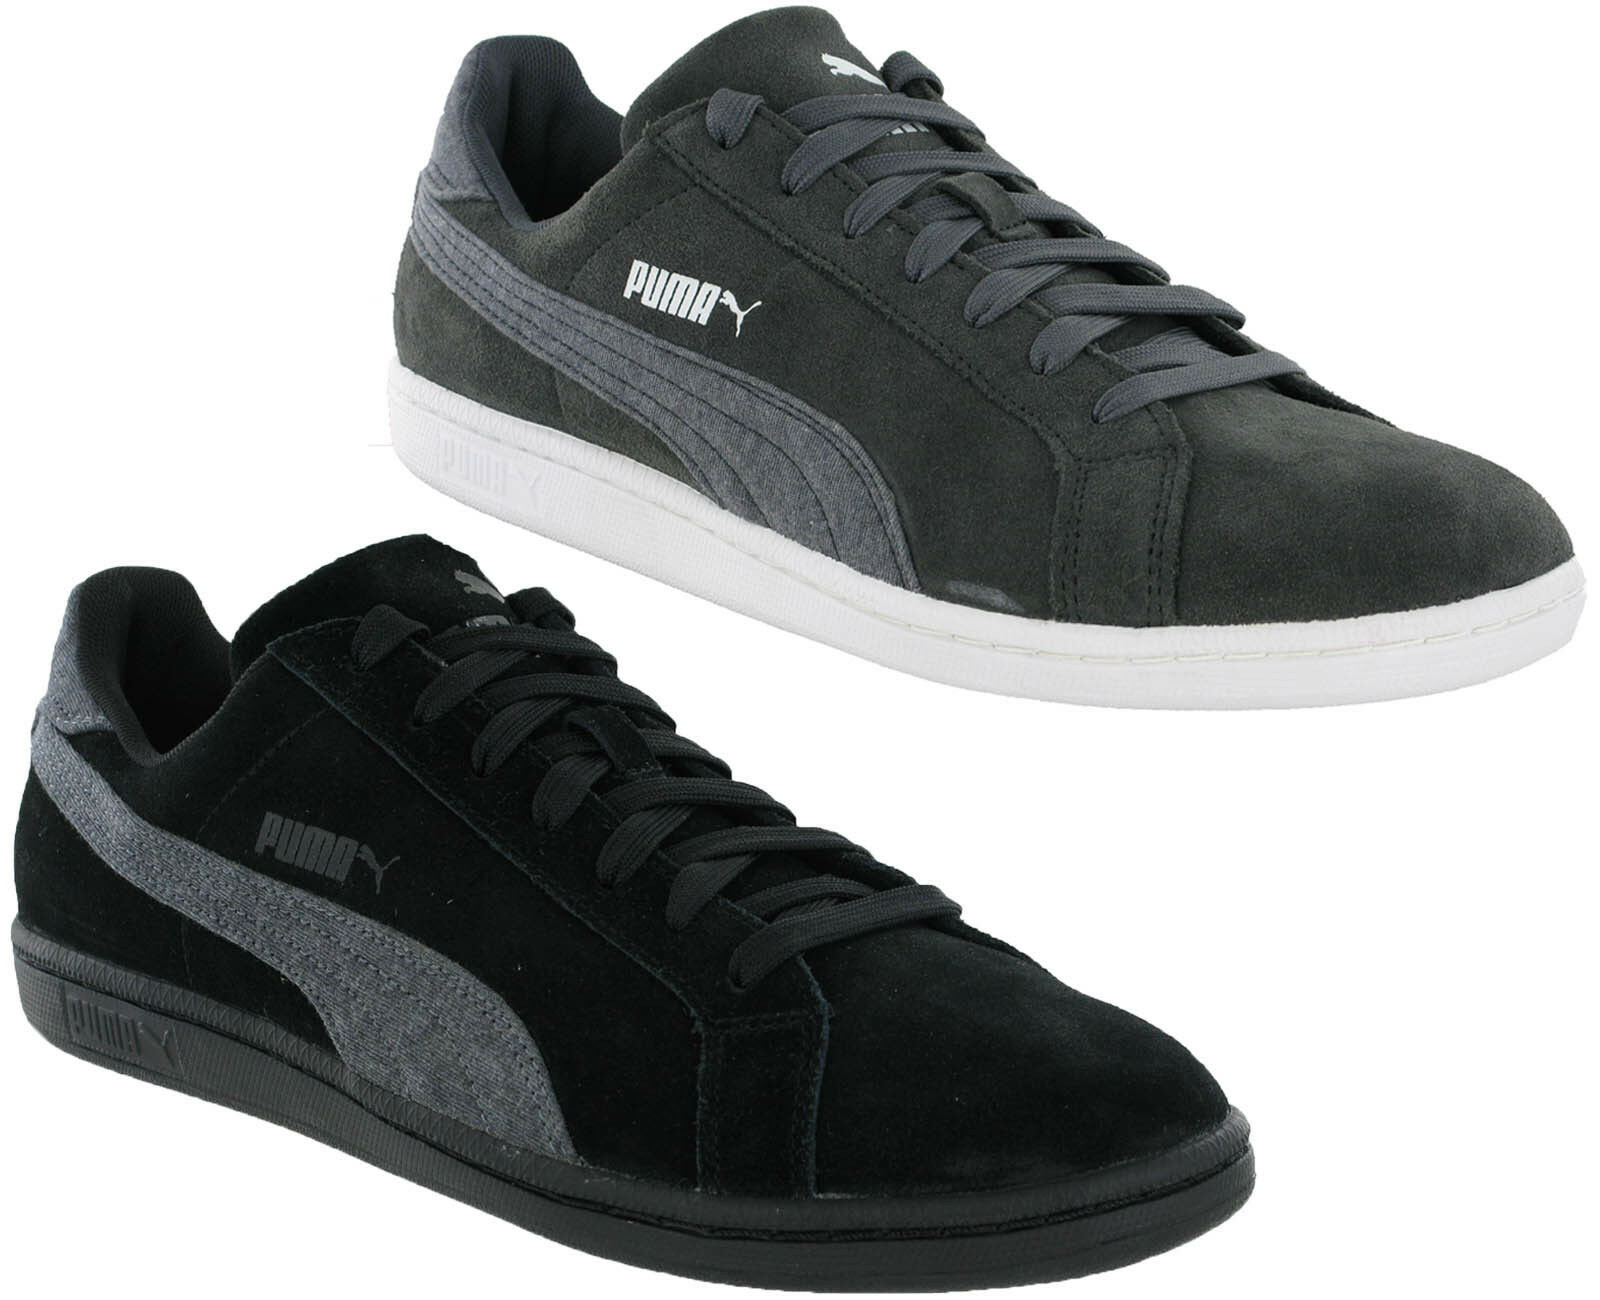 Puma Suede Classic Smash Jersey Leather homme Trainers  Gris , noir